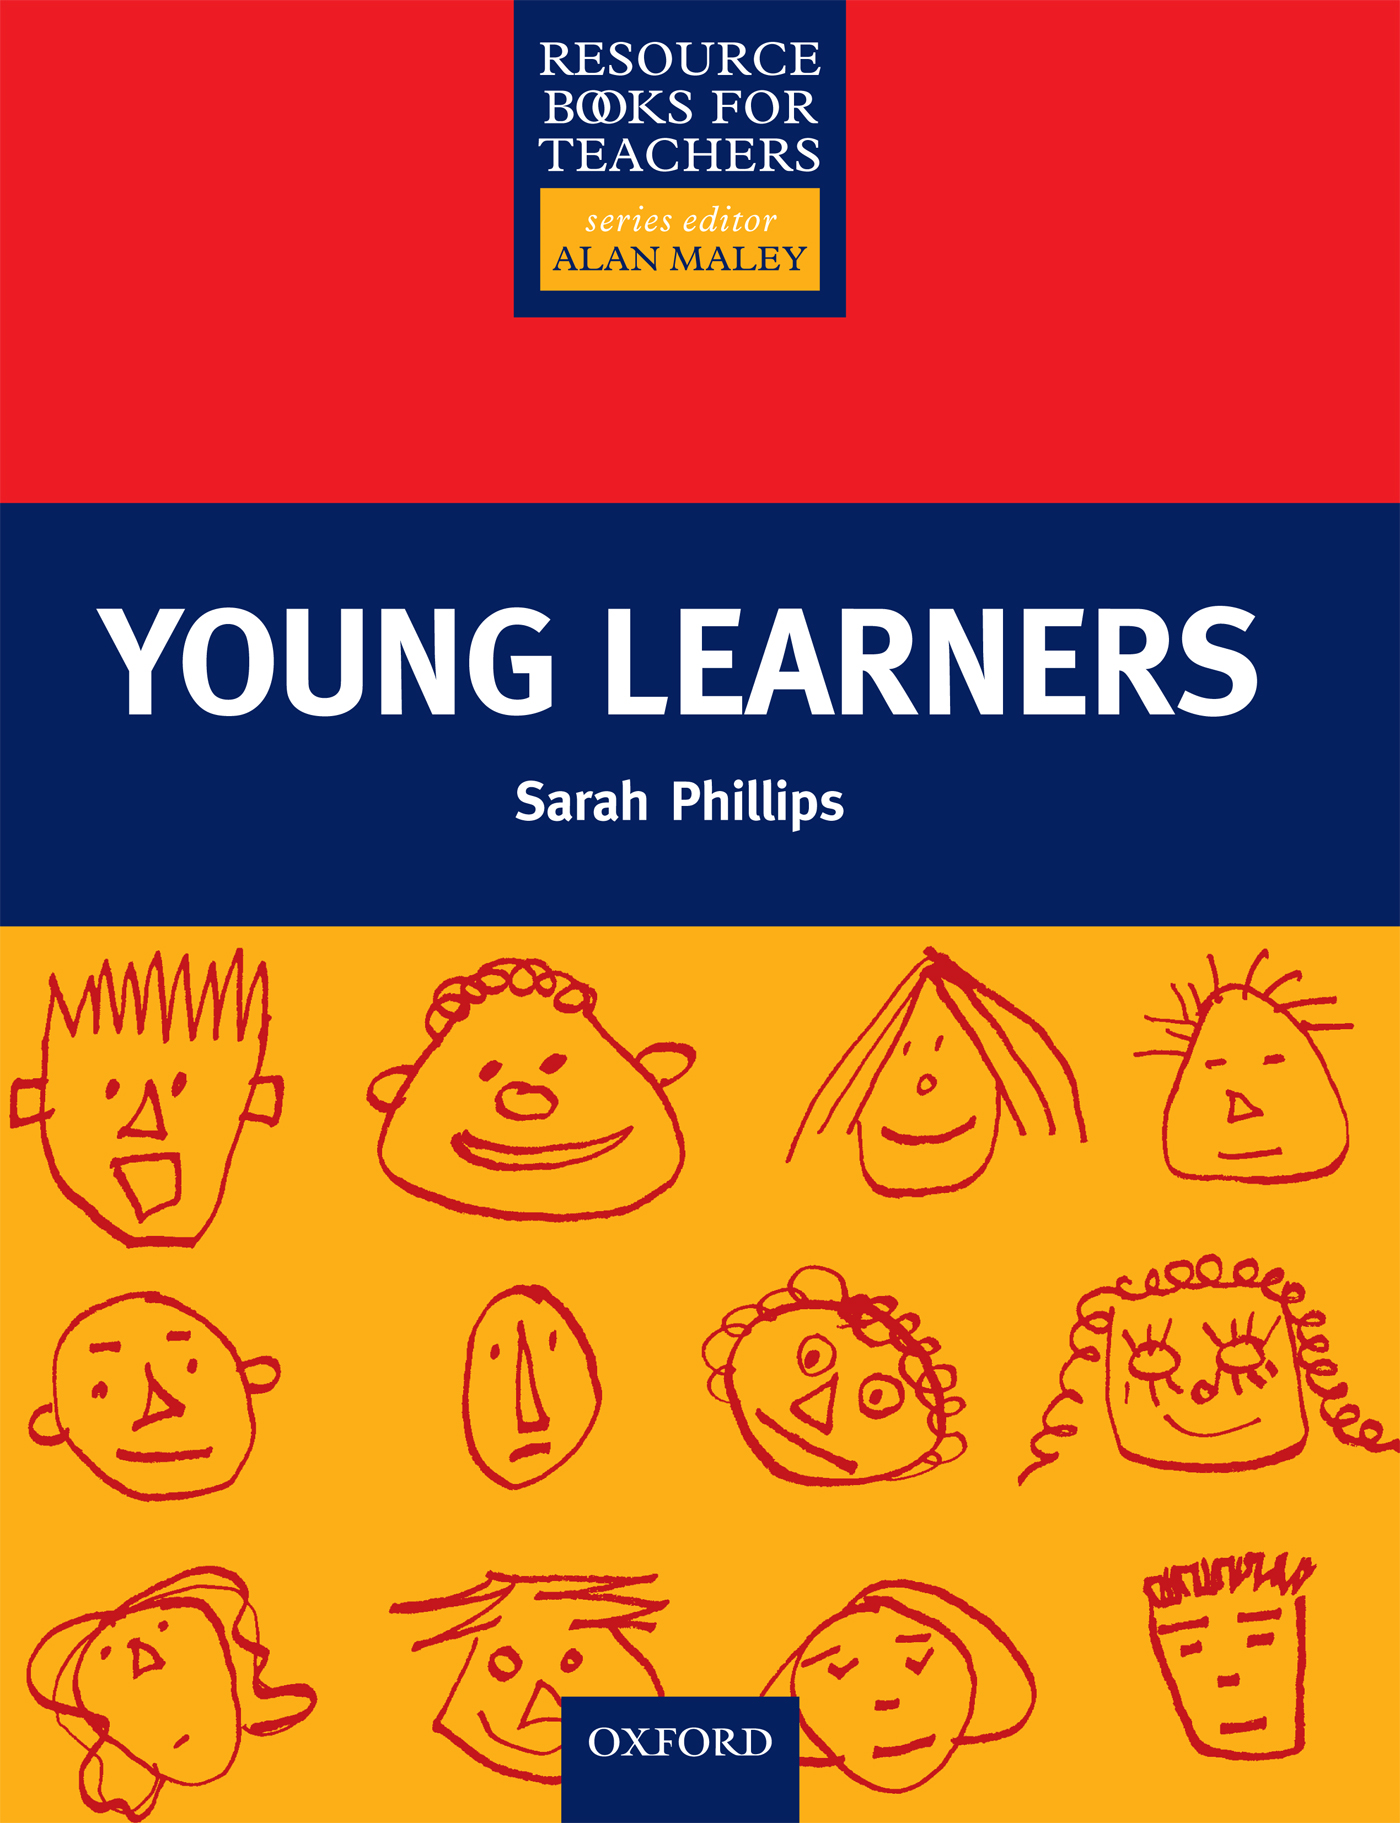 RBT: YOUNG LEARNERS